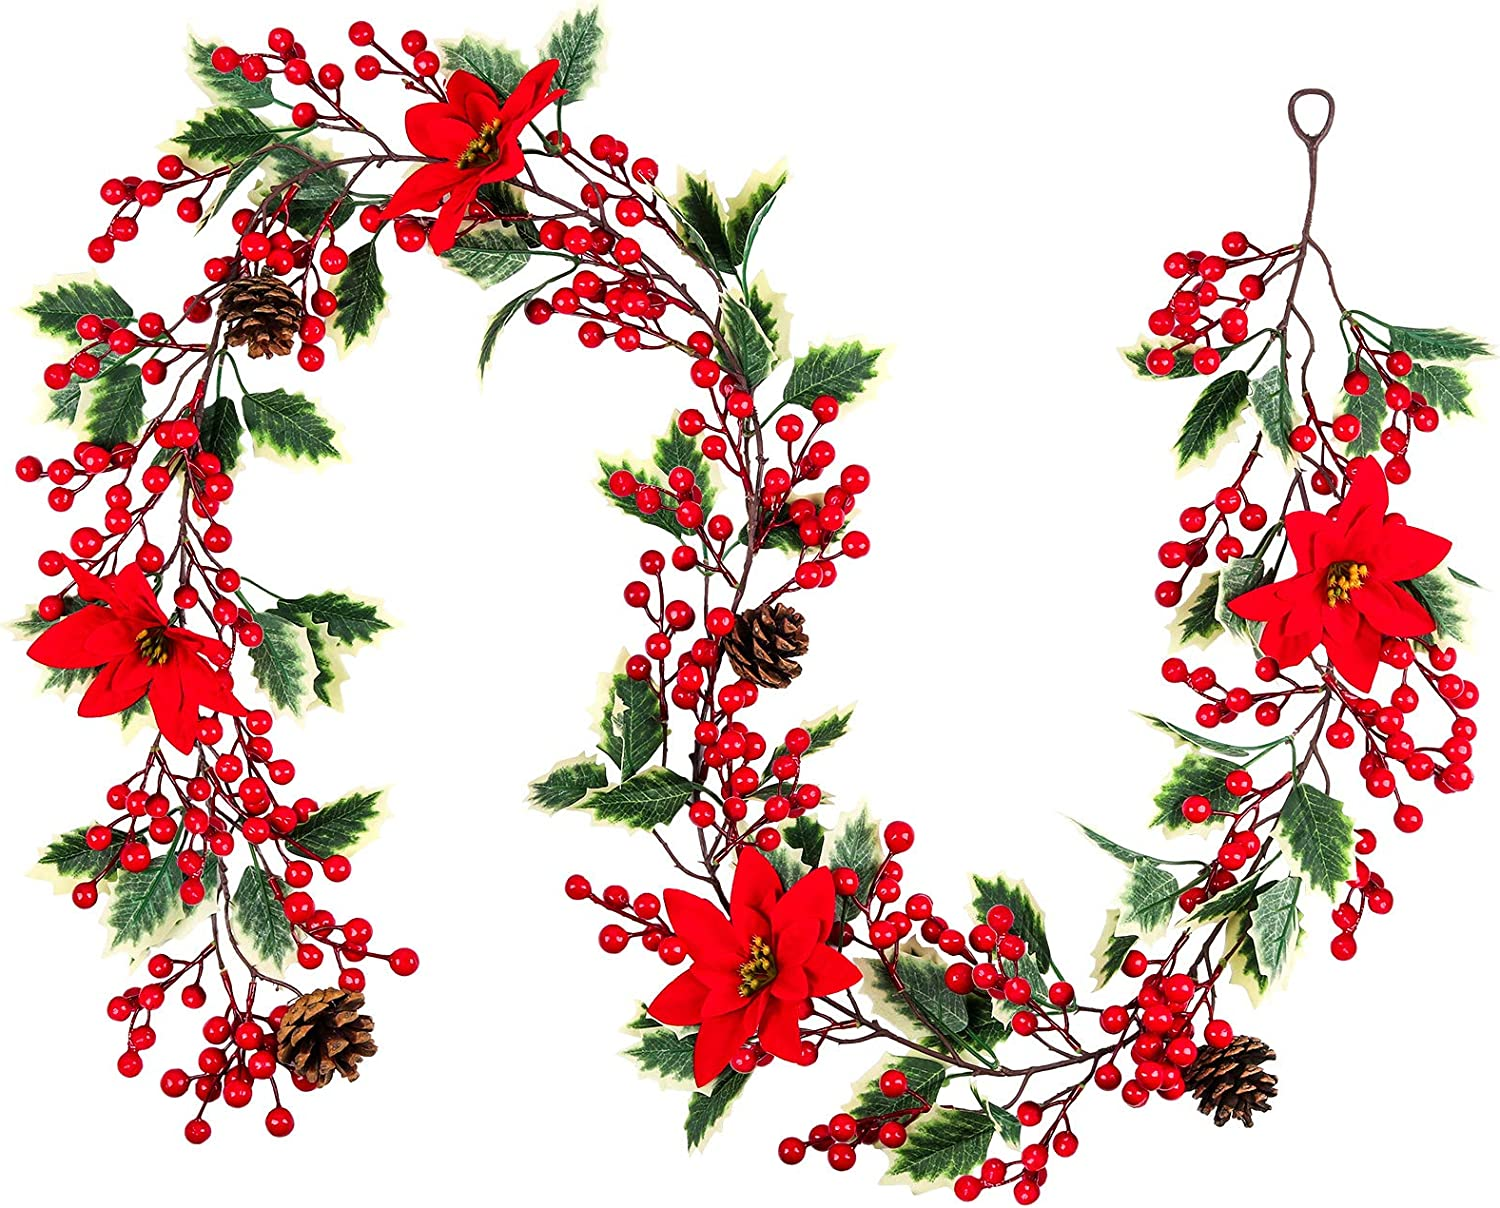 Mocoosy 6.3FT Red Berry Christmas Garland, Artificial Poinsettia Garland, Christmas Berry Garland With Pine Cones for Indoor Outdoor Fireplace Stairs Door Decorations for Holiday Xmas Home Decor